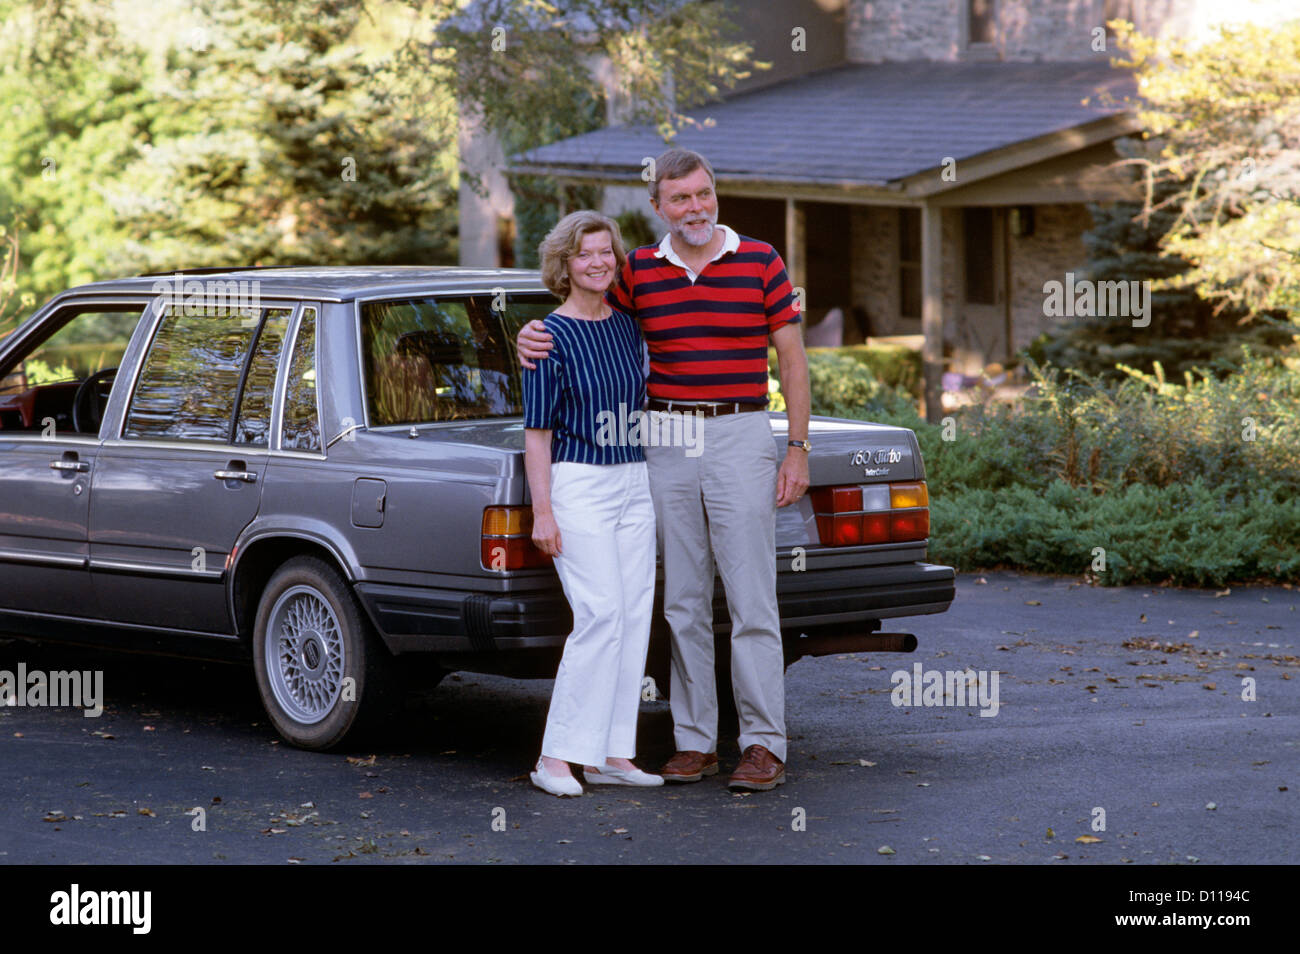 1980s SMILING COUPLE IN DRIVEWAY WITH CAR - Stock Image